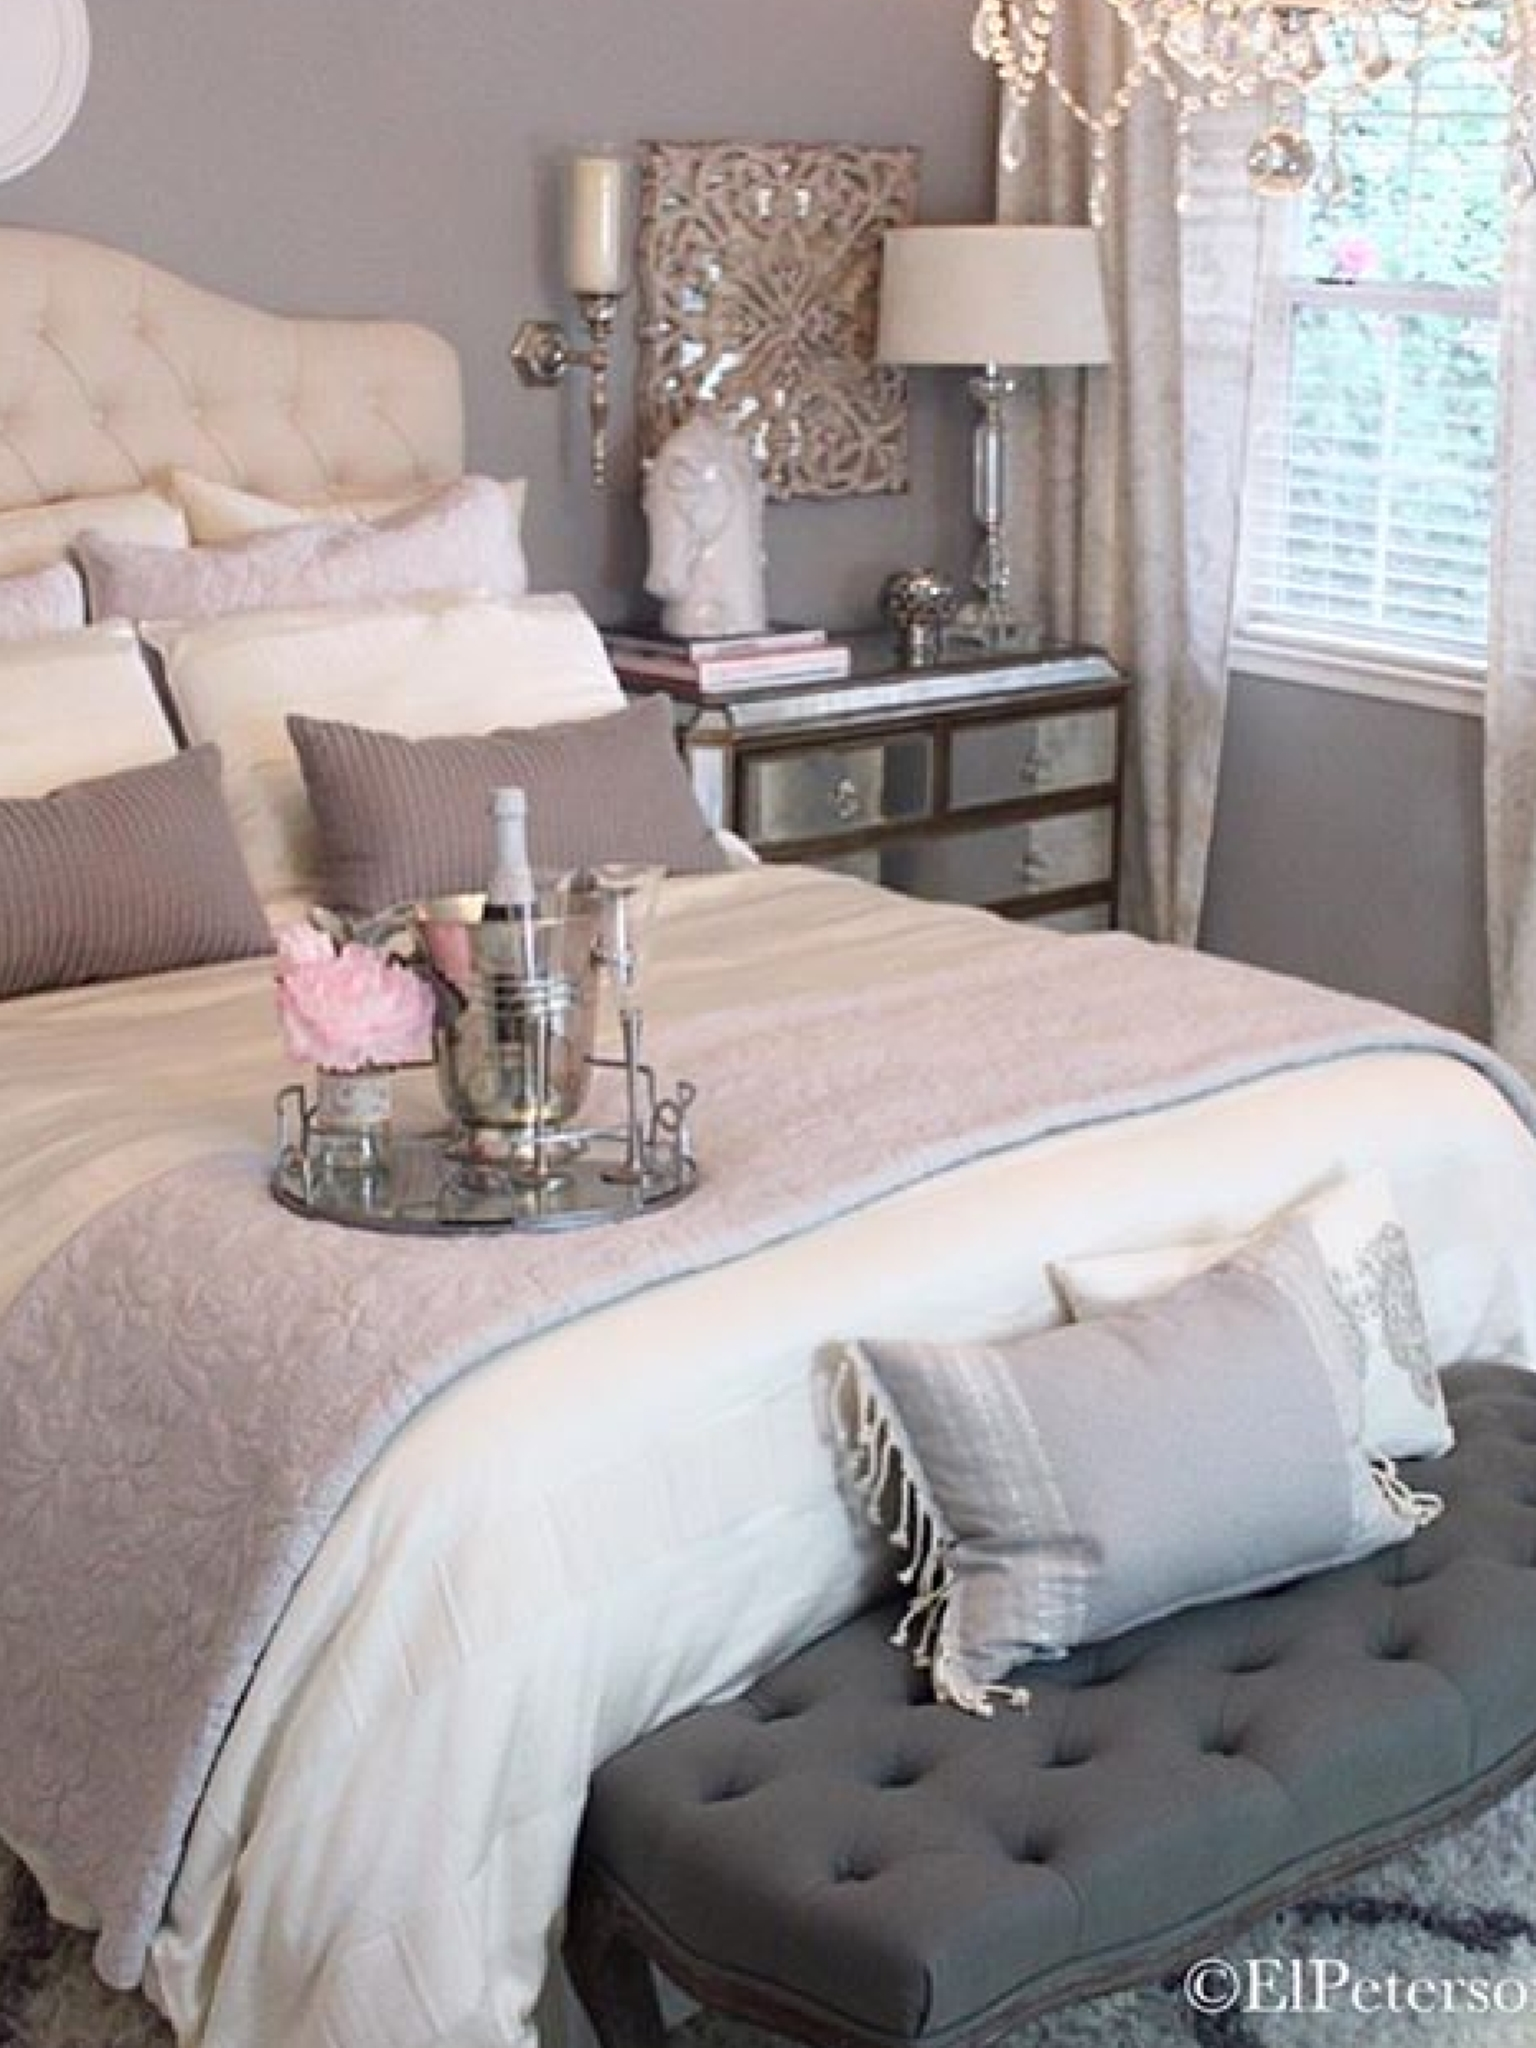 Bedroom Design: Fabric Wall Art Modern Bedroom Decor Feminine Intended For Most Current Bedroom Fabric Wall Art (View 15 of 15)